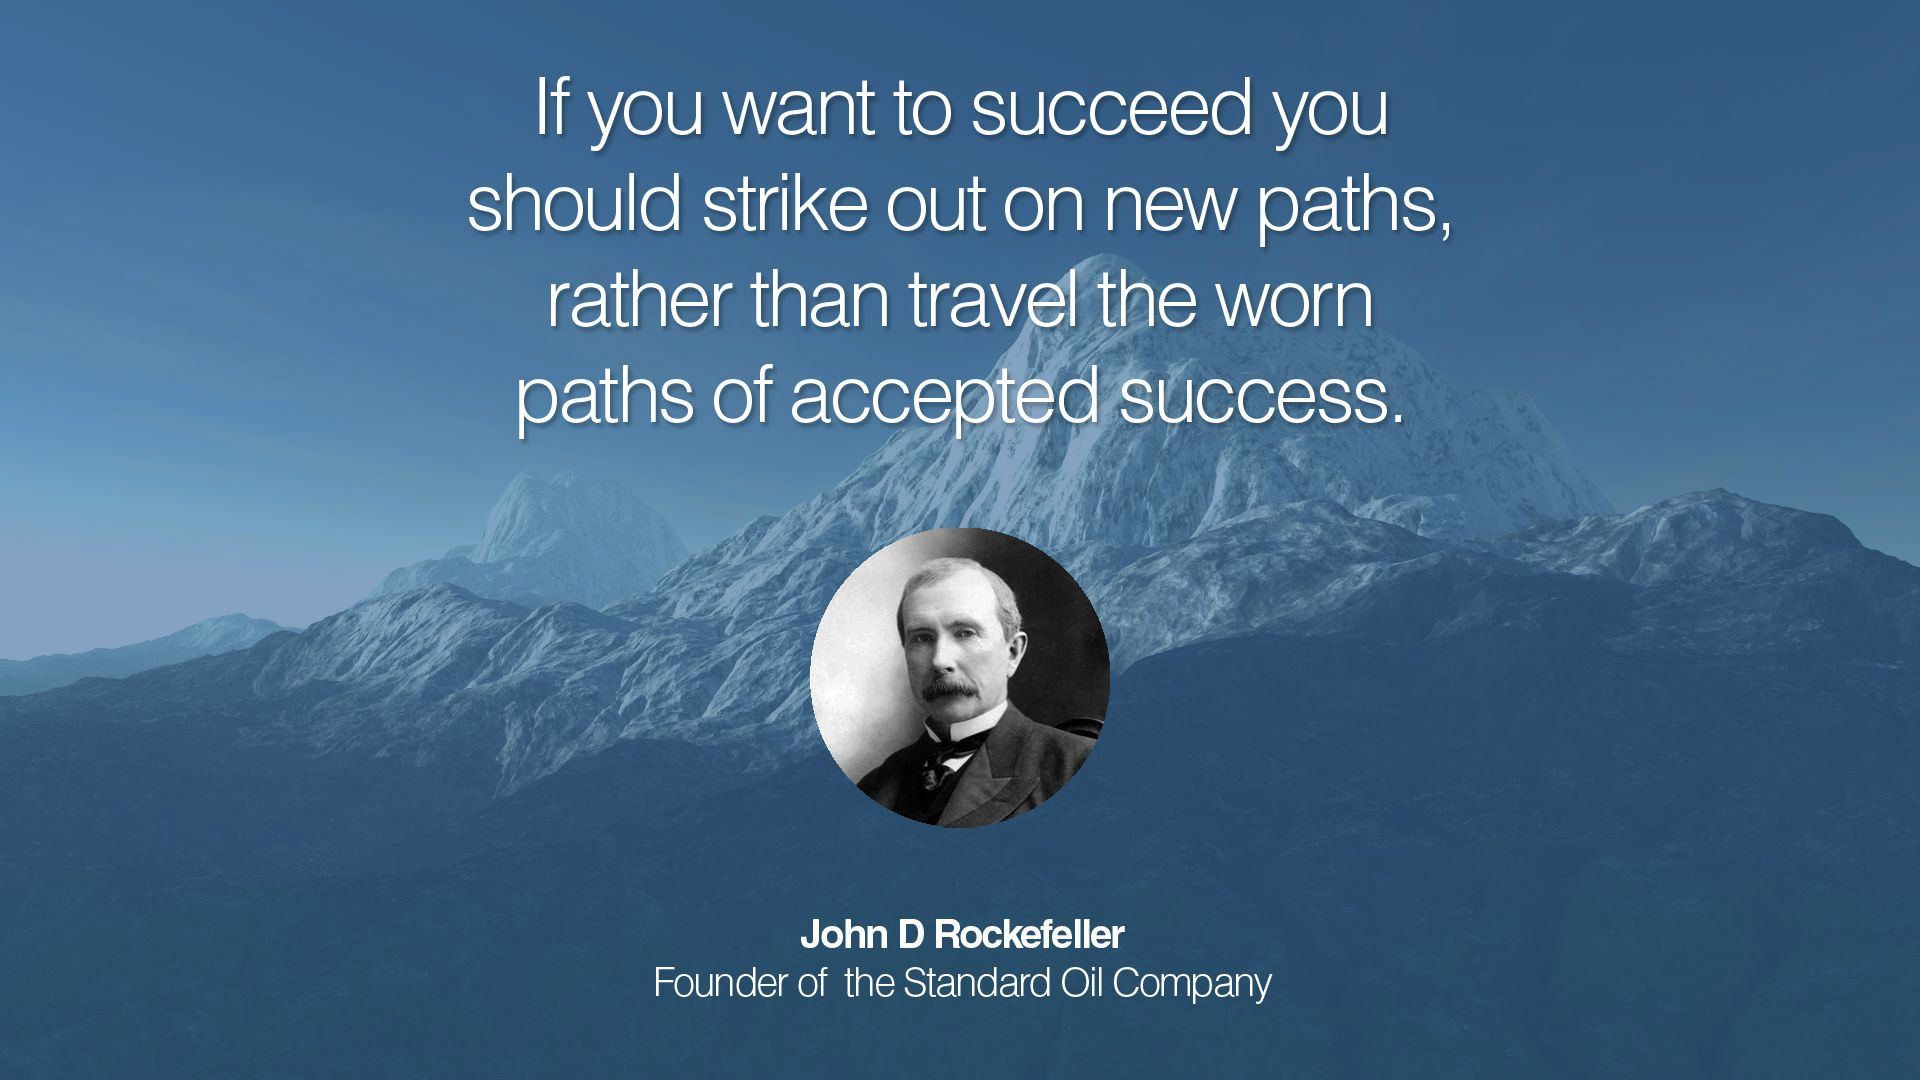 best images about favorite quotes money quotes 17 best images about favorite quotes money quotes entrepreneur and john d rockefeller